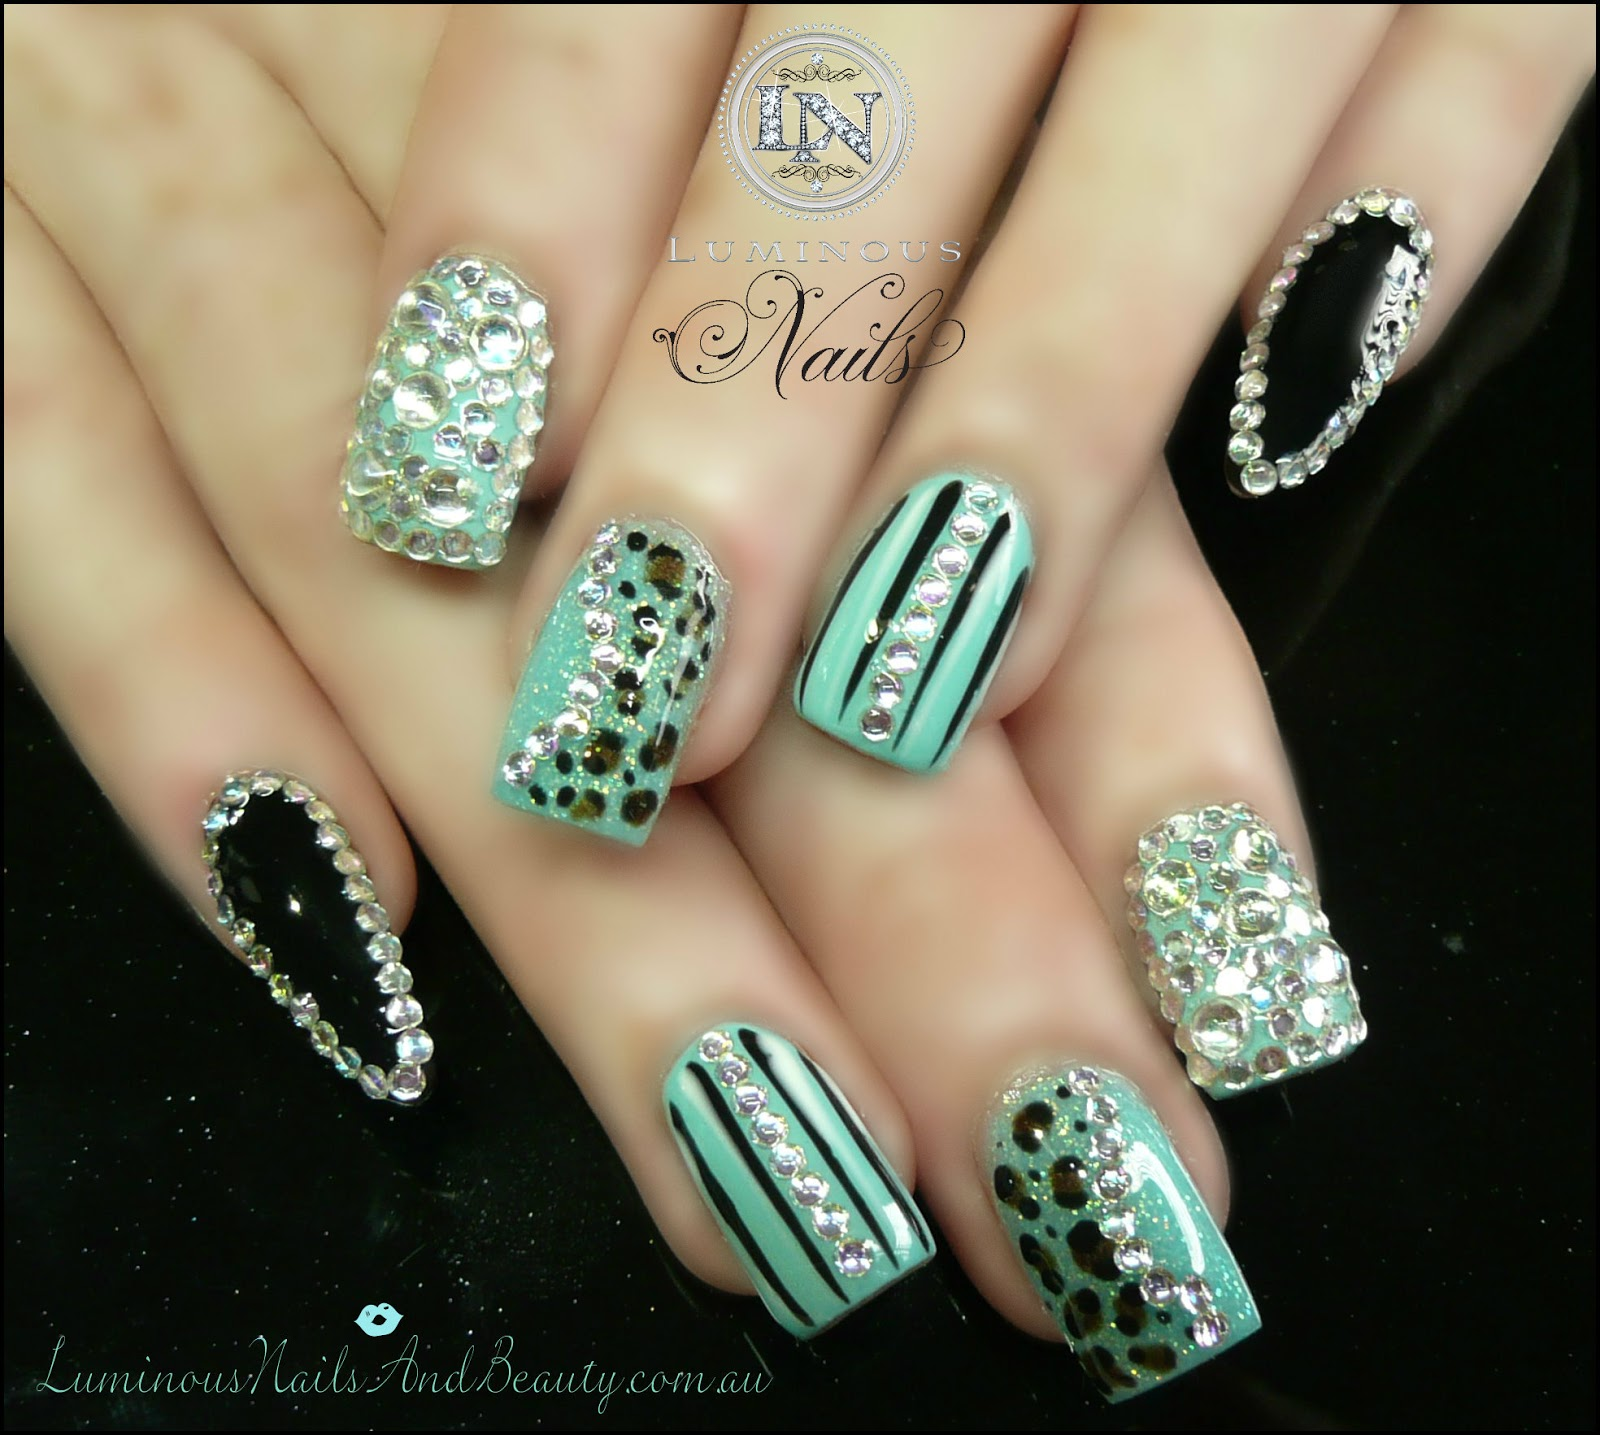 The Amusing Cute cheetah print nails Digital Photography